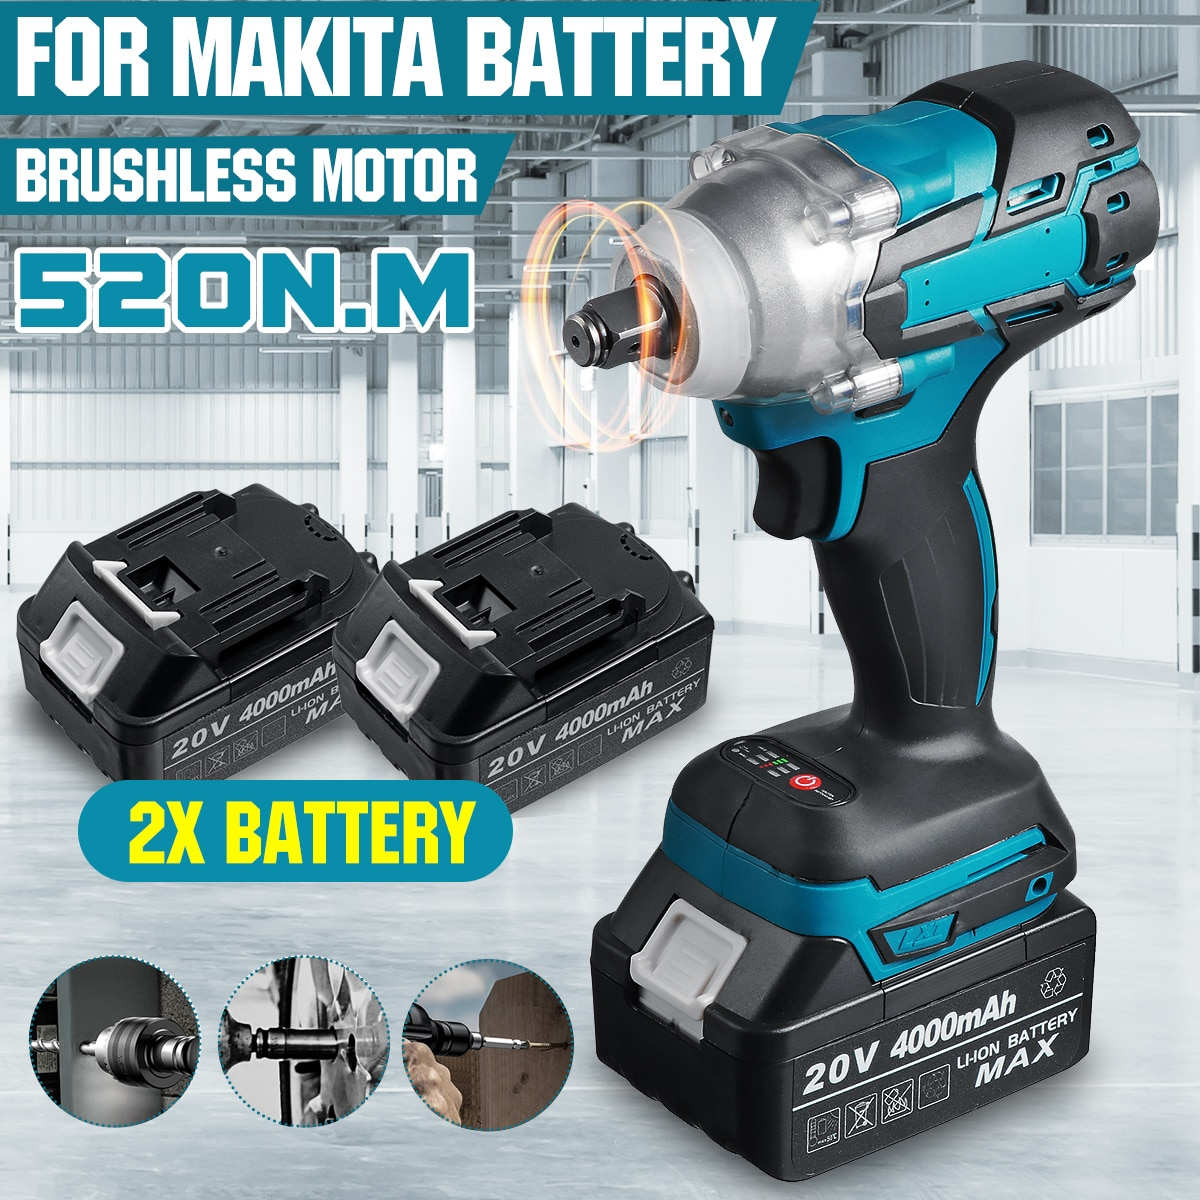 20V Brushless Electric Impact Wrench 520N.m Rechargeable 1/2 Socket Cordless Wrench Screwdriver Powe